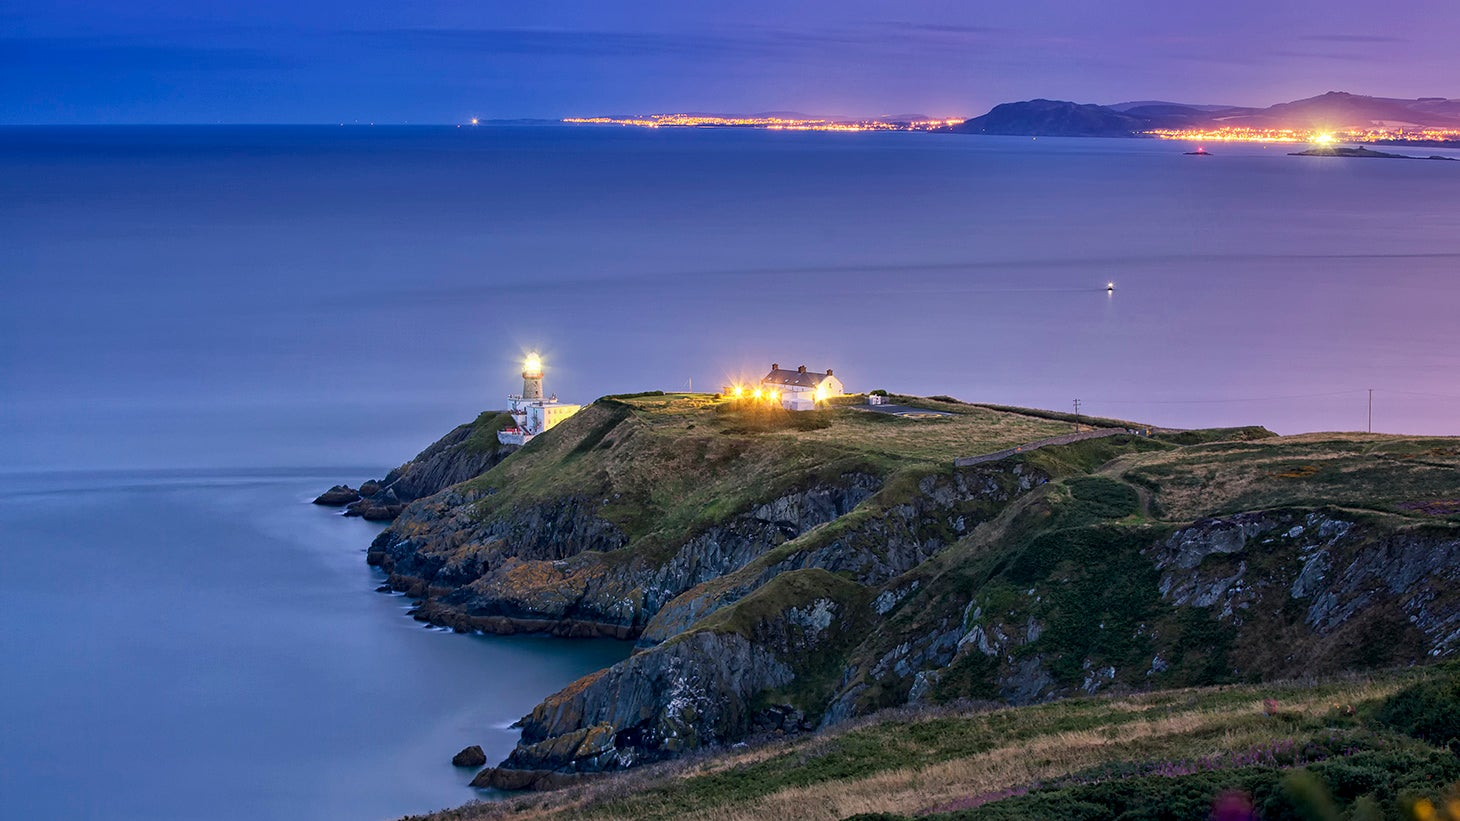 Soak up the stunning views in beautiful Howth.